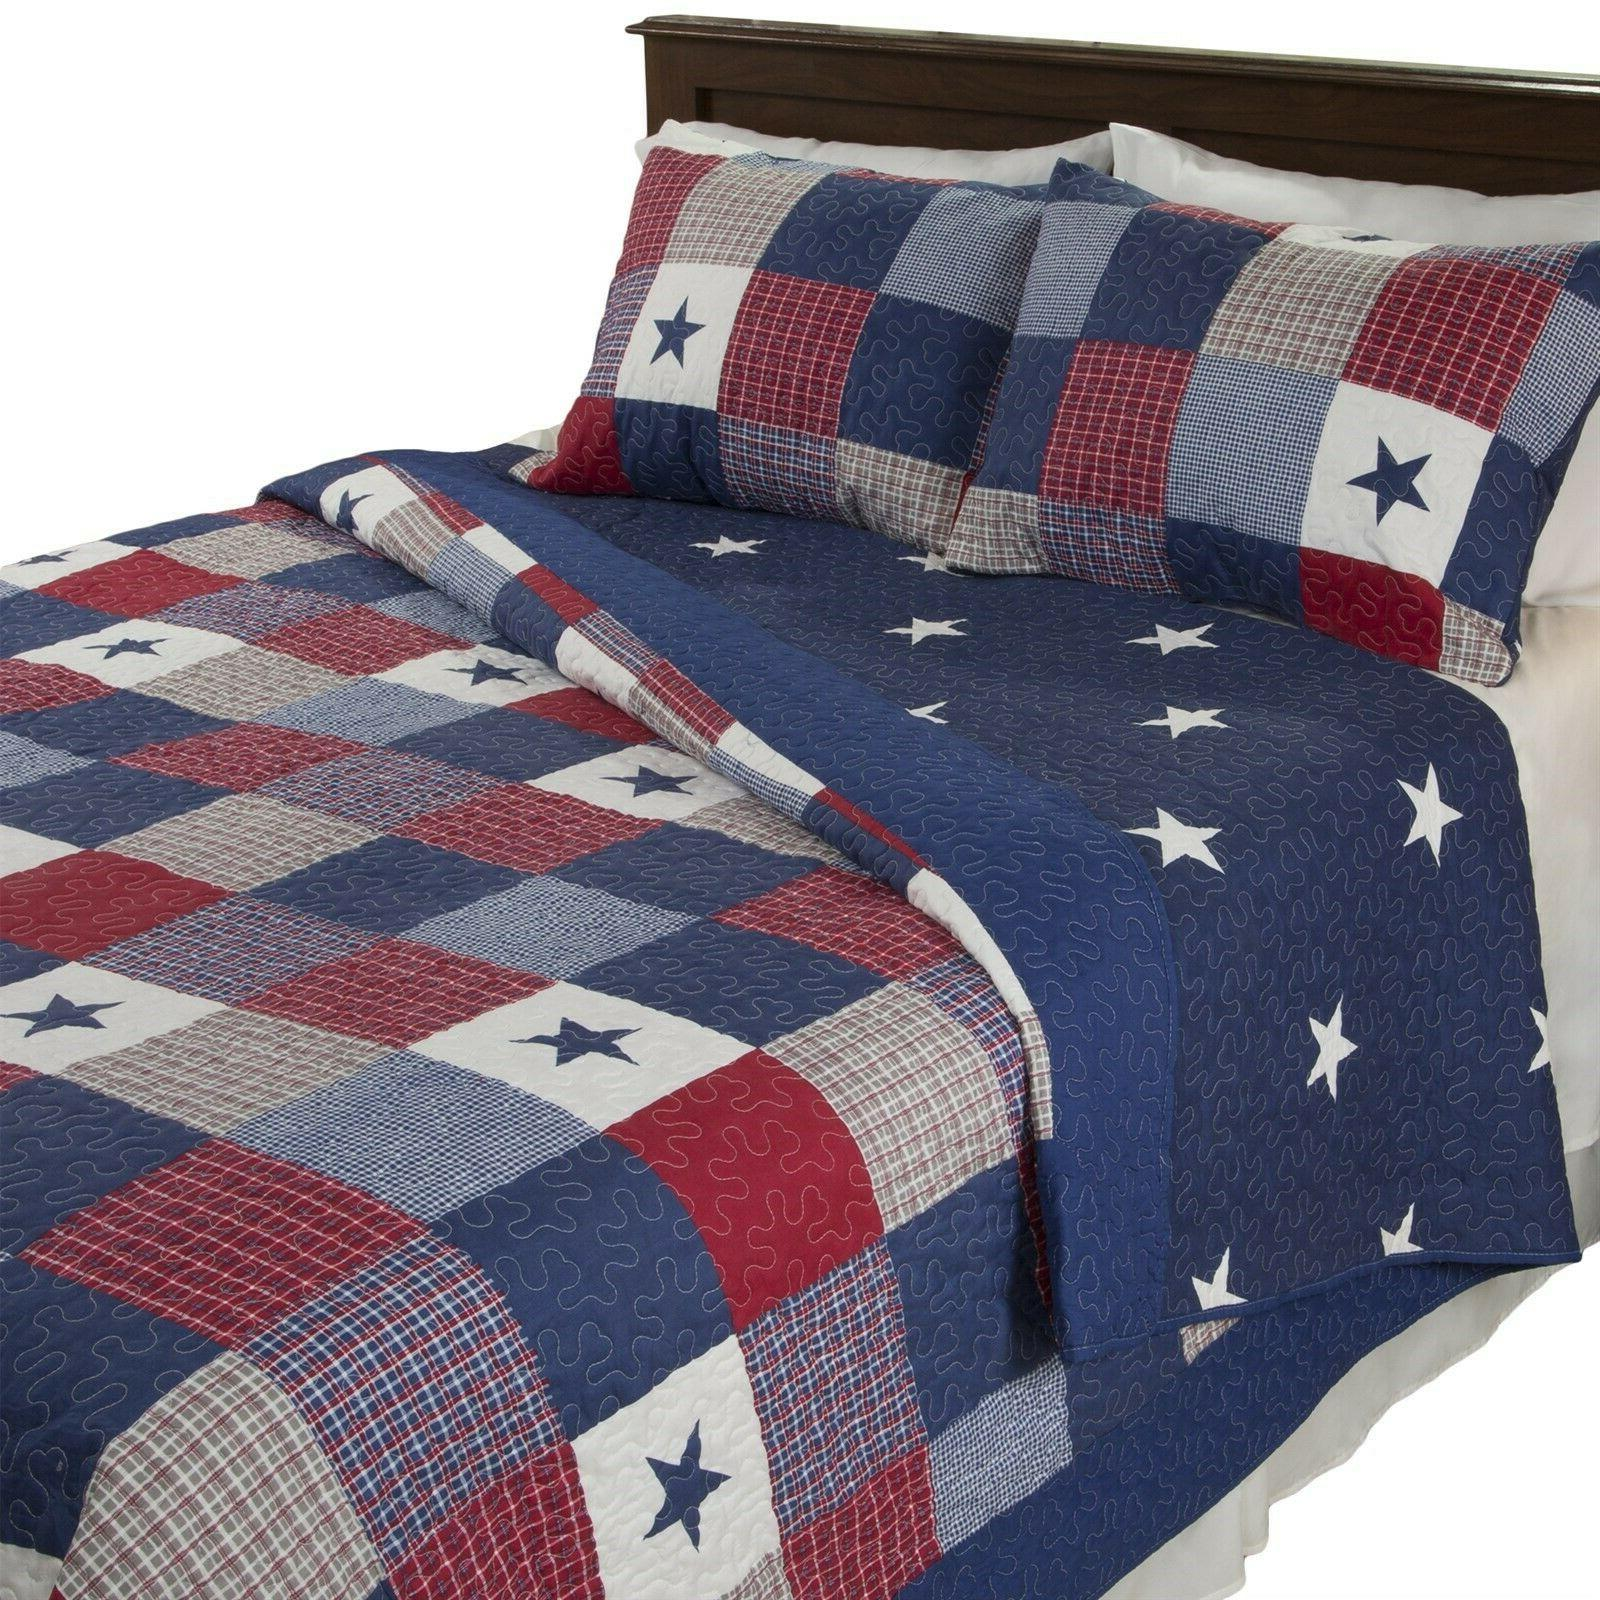 all american quilted blanket red white blue